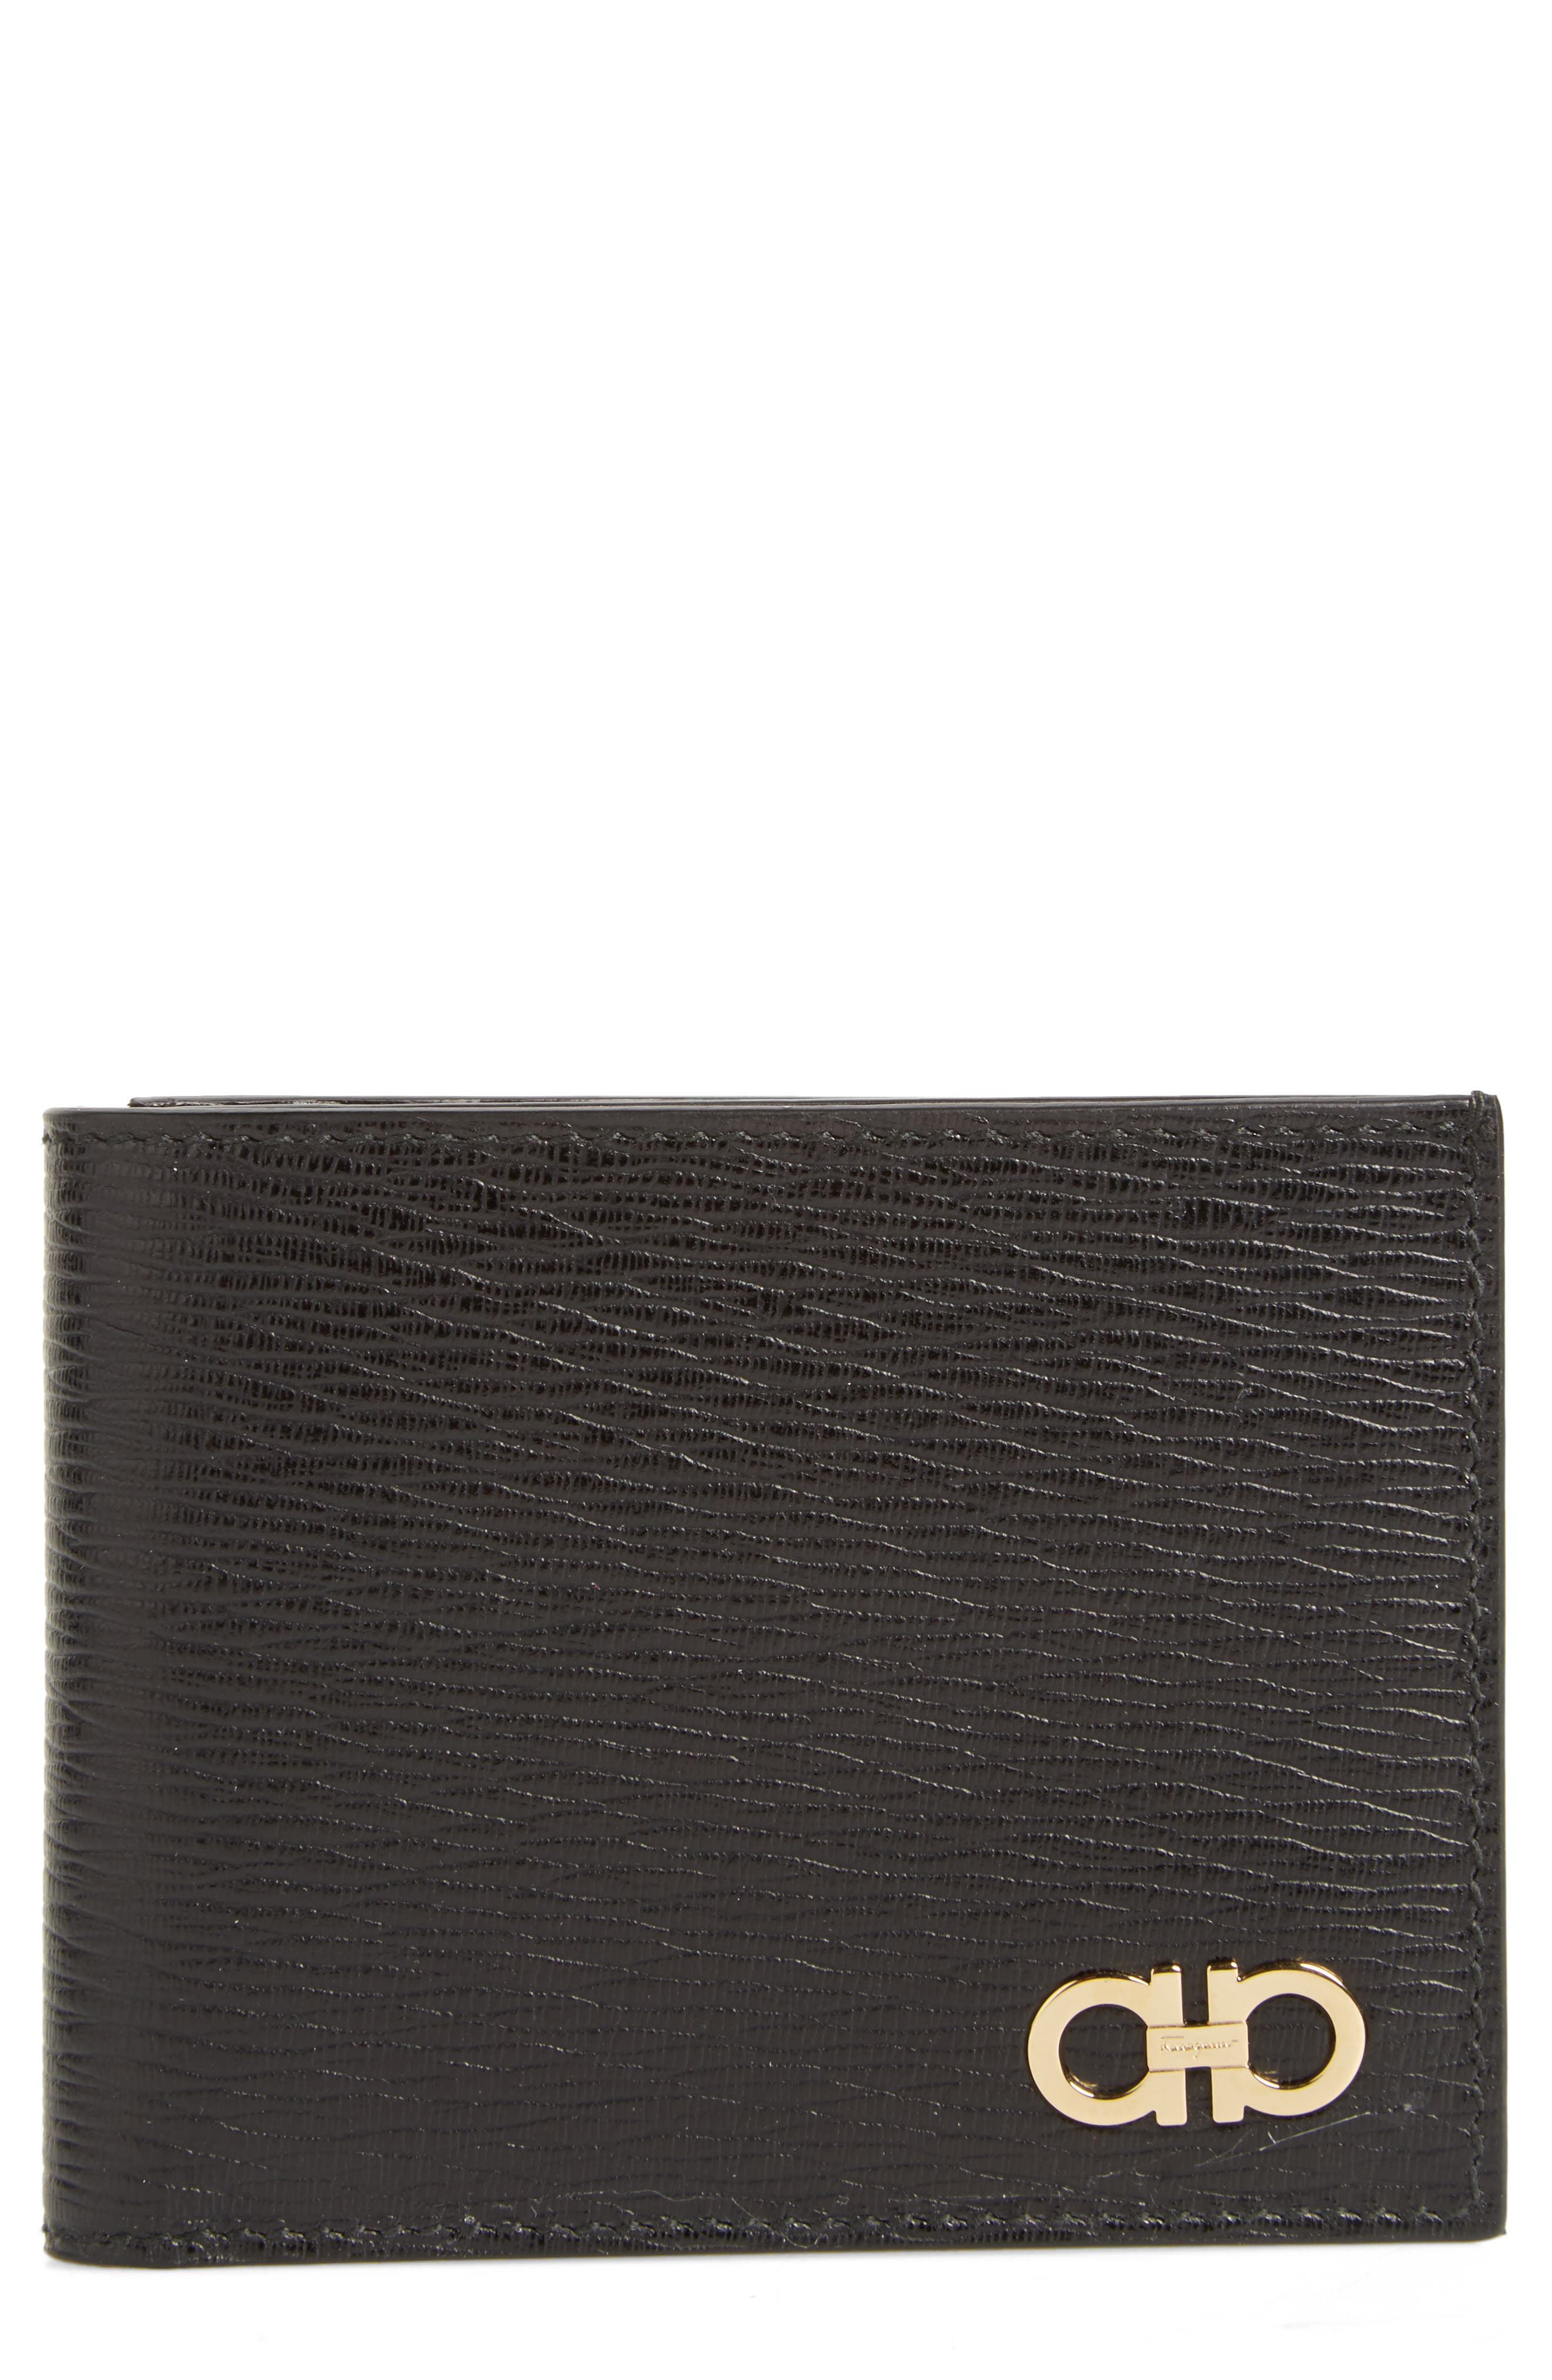 Revival Leather Wallet,                         Main,                         color, 001